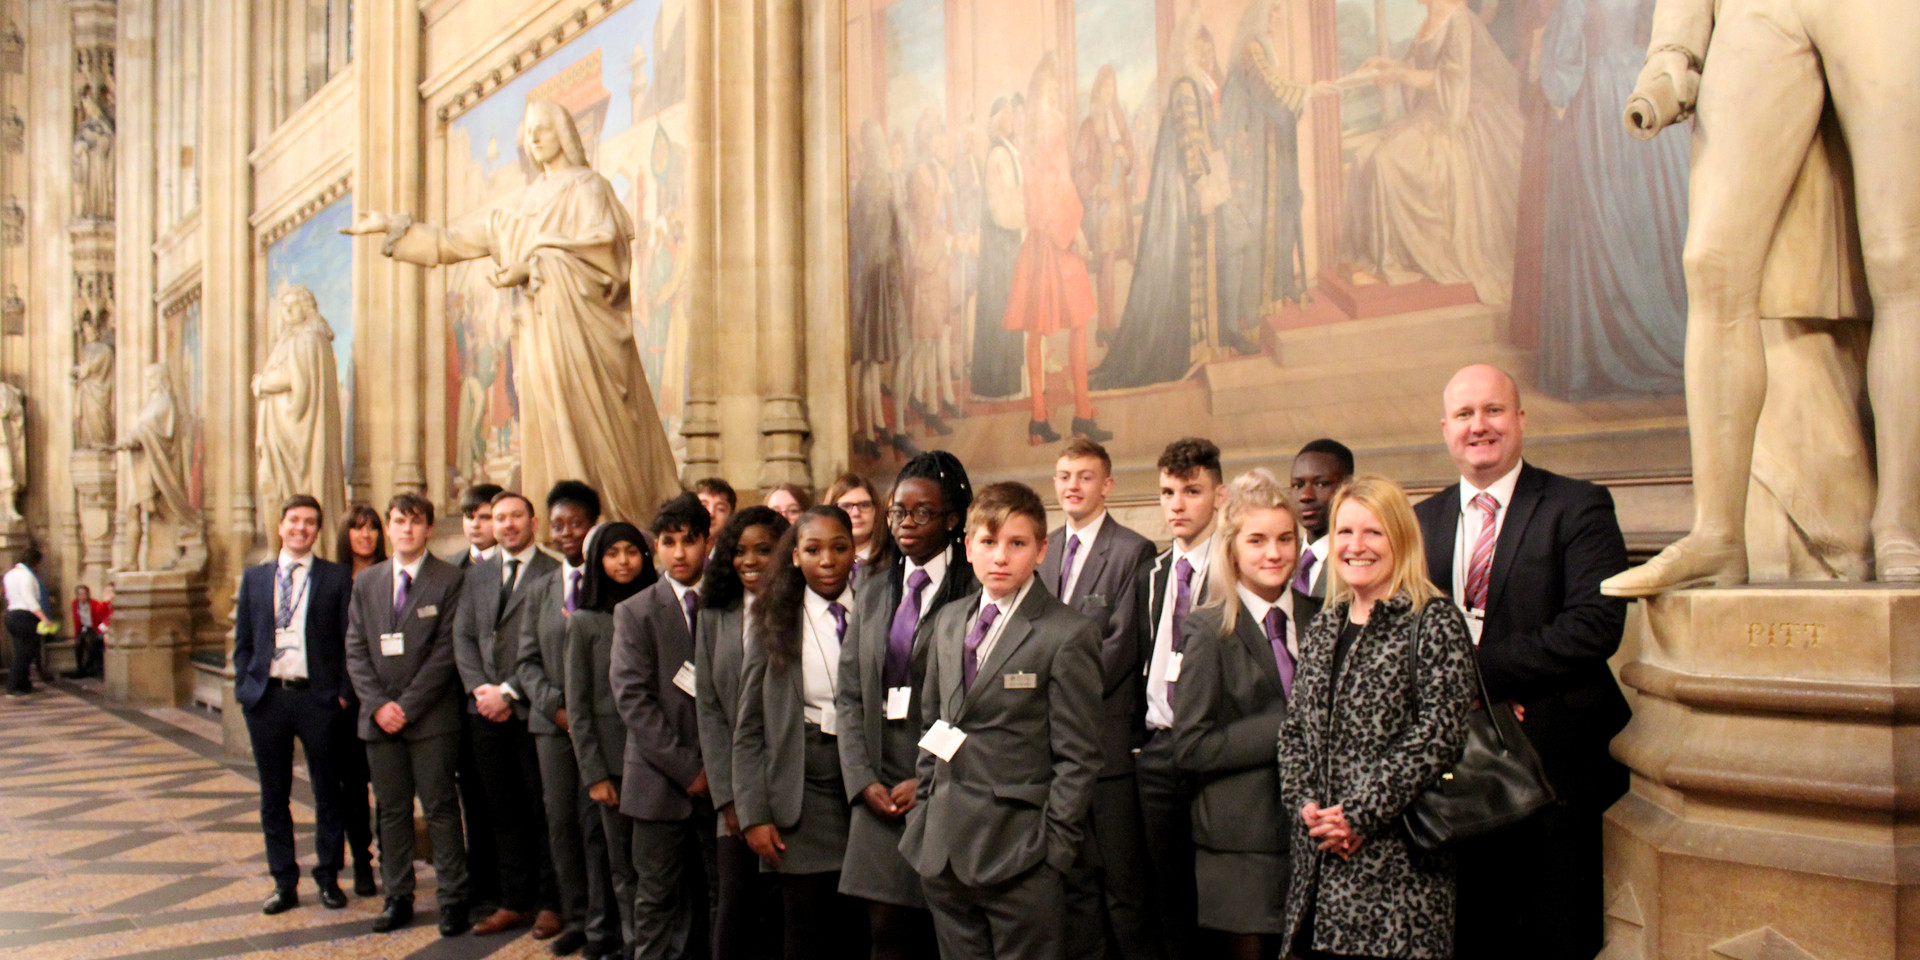 group in houses of parliment hall _GRADE